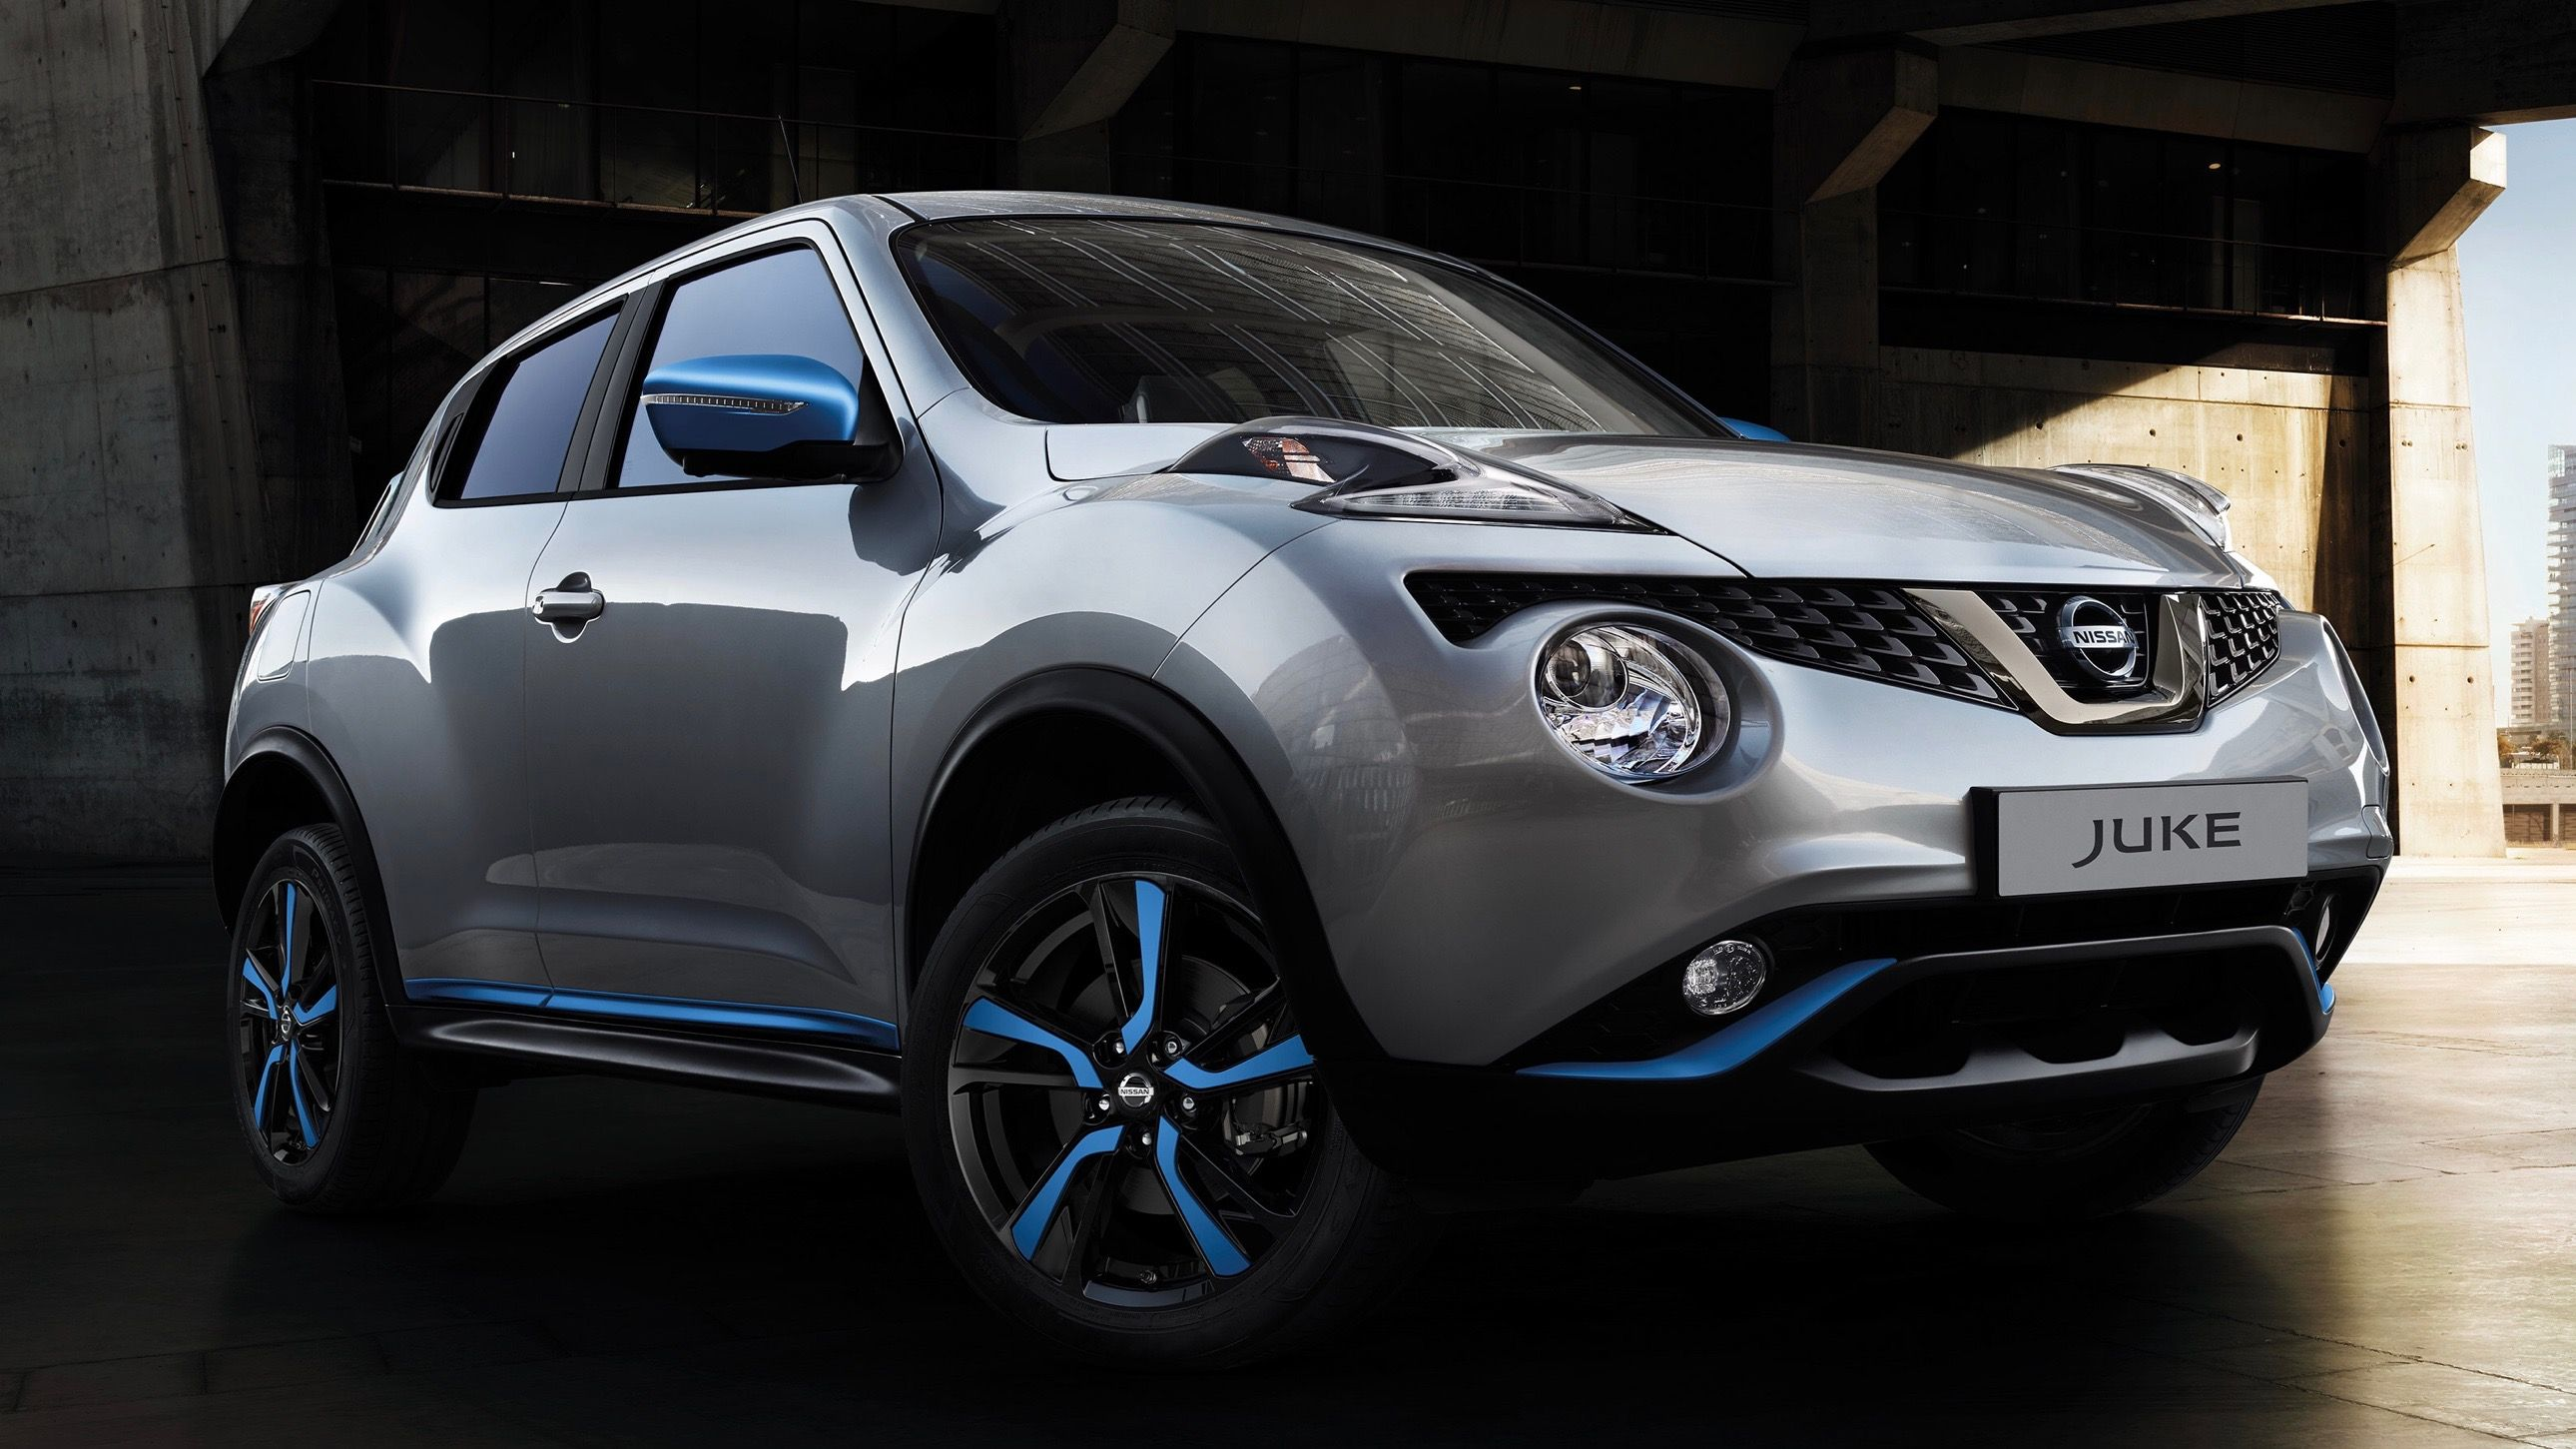 Pin By Tio Setioko On Nissan Juke Nissan Juke Nissan Suv Car